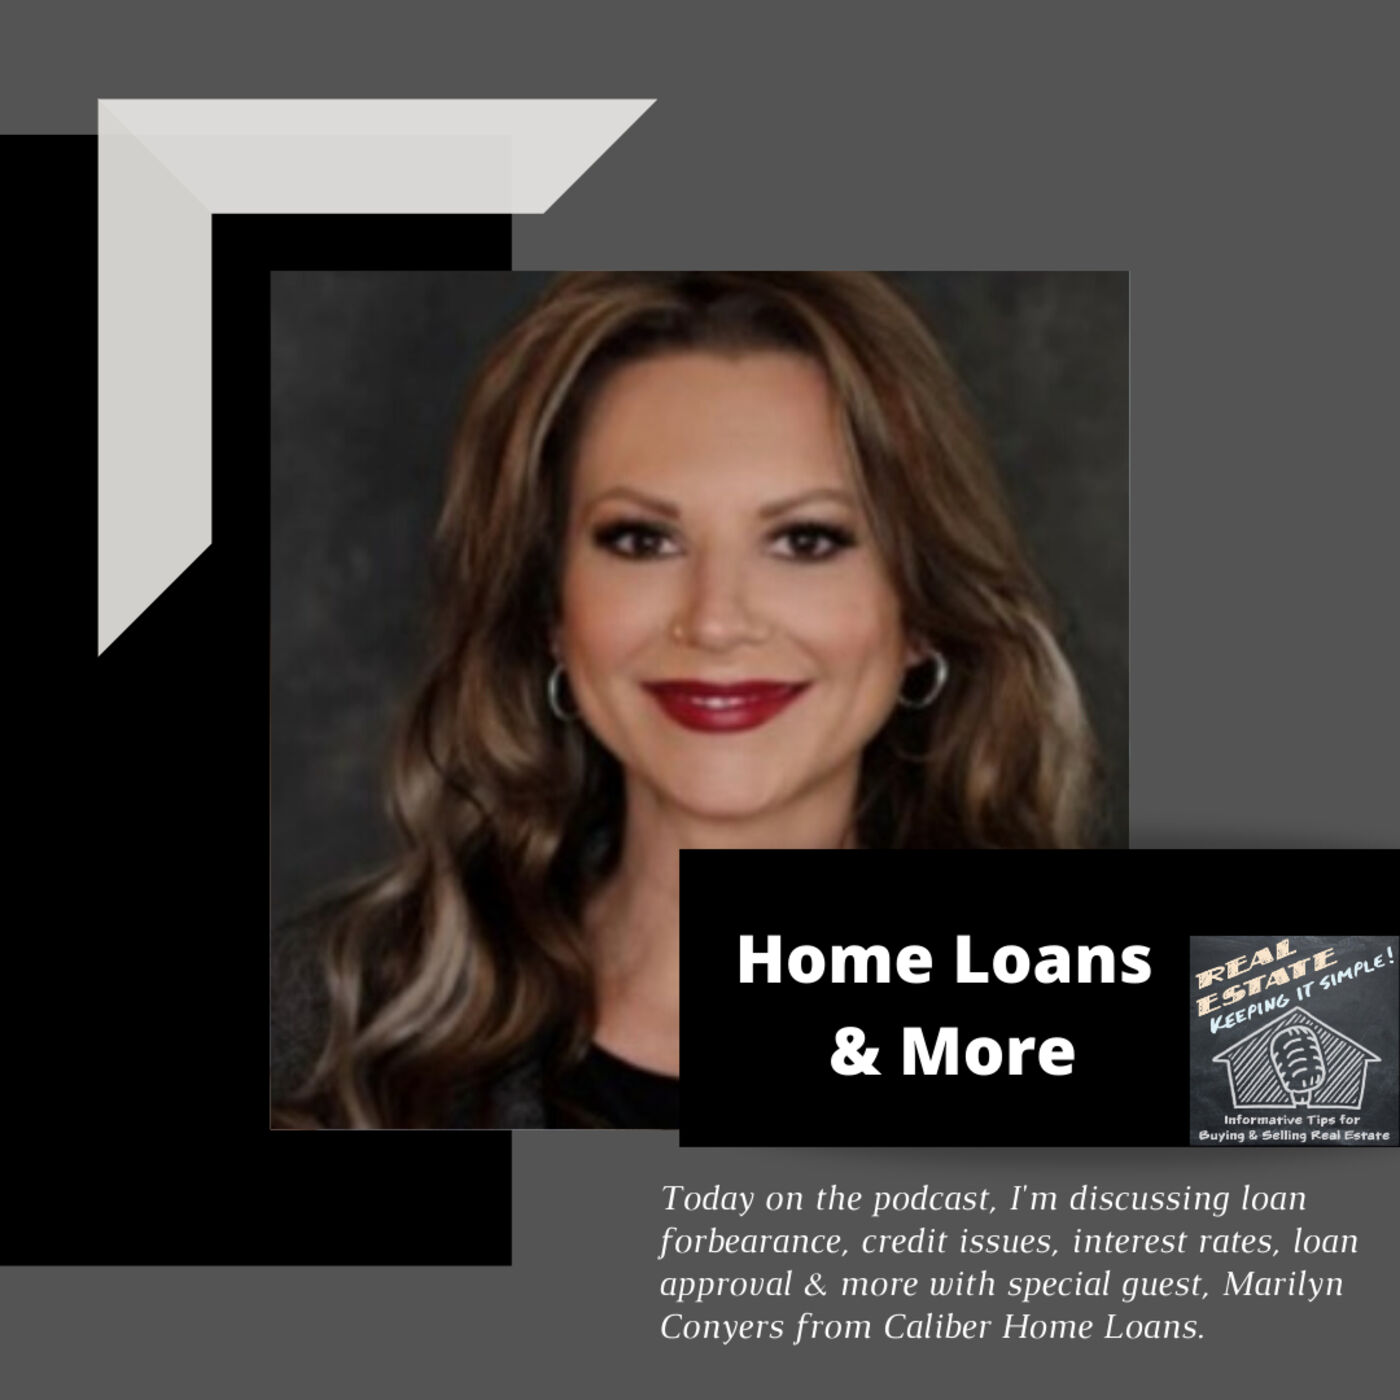 My conversation with Marilyn Conyers - THE TOUCHETTE TEAM at Caliber Home Loans